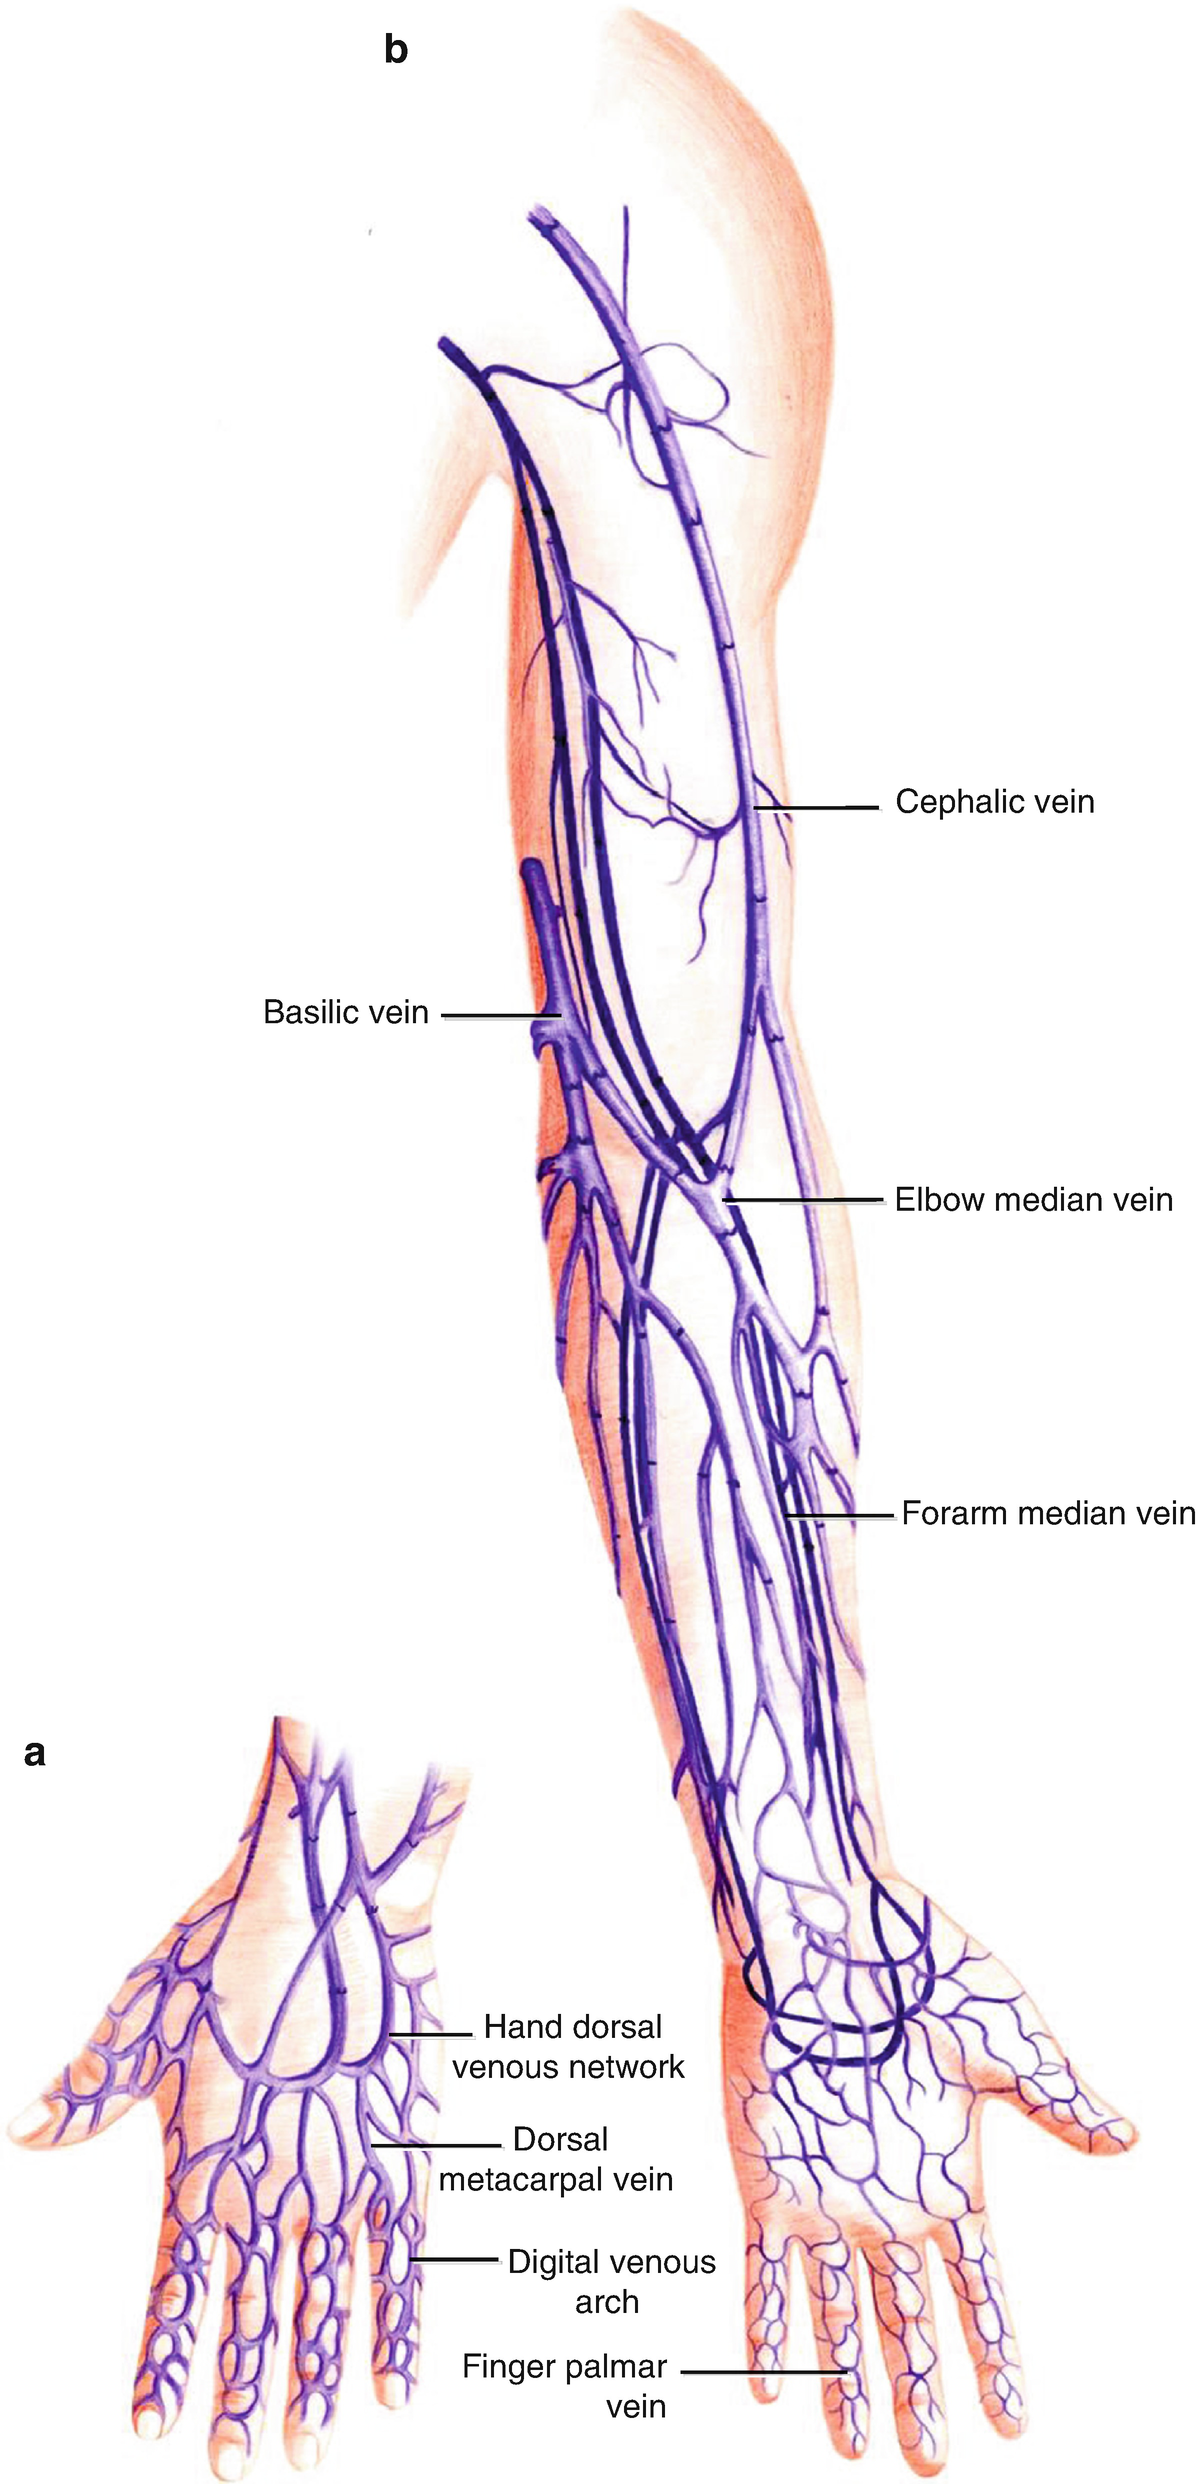 Applied Anatomy Of The Hand Springerlink And Root Middle Finger On Index Bone See Diagram Open Image In New Window